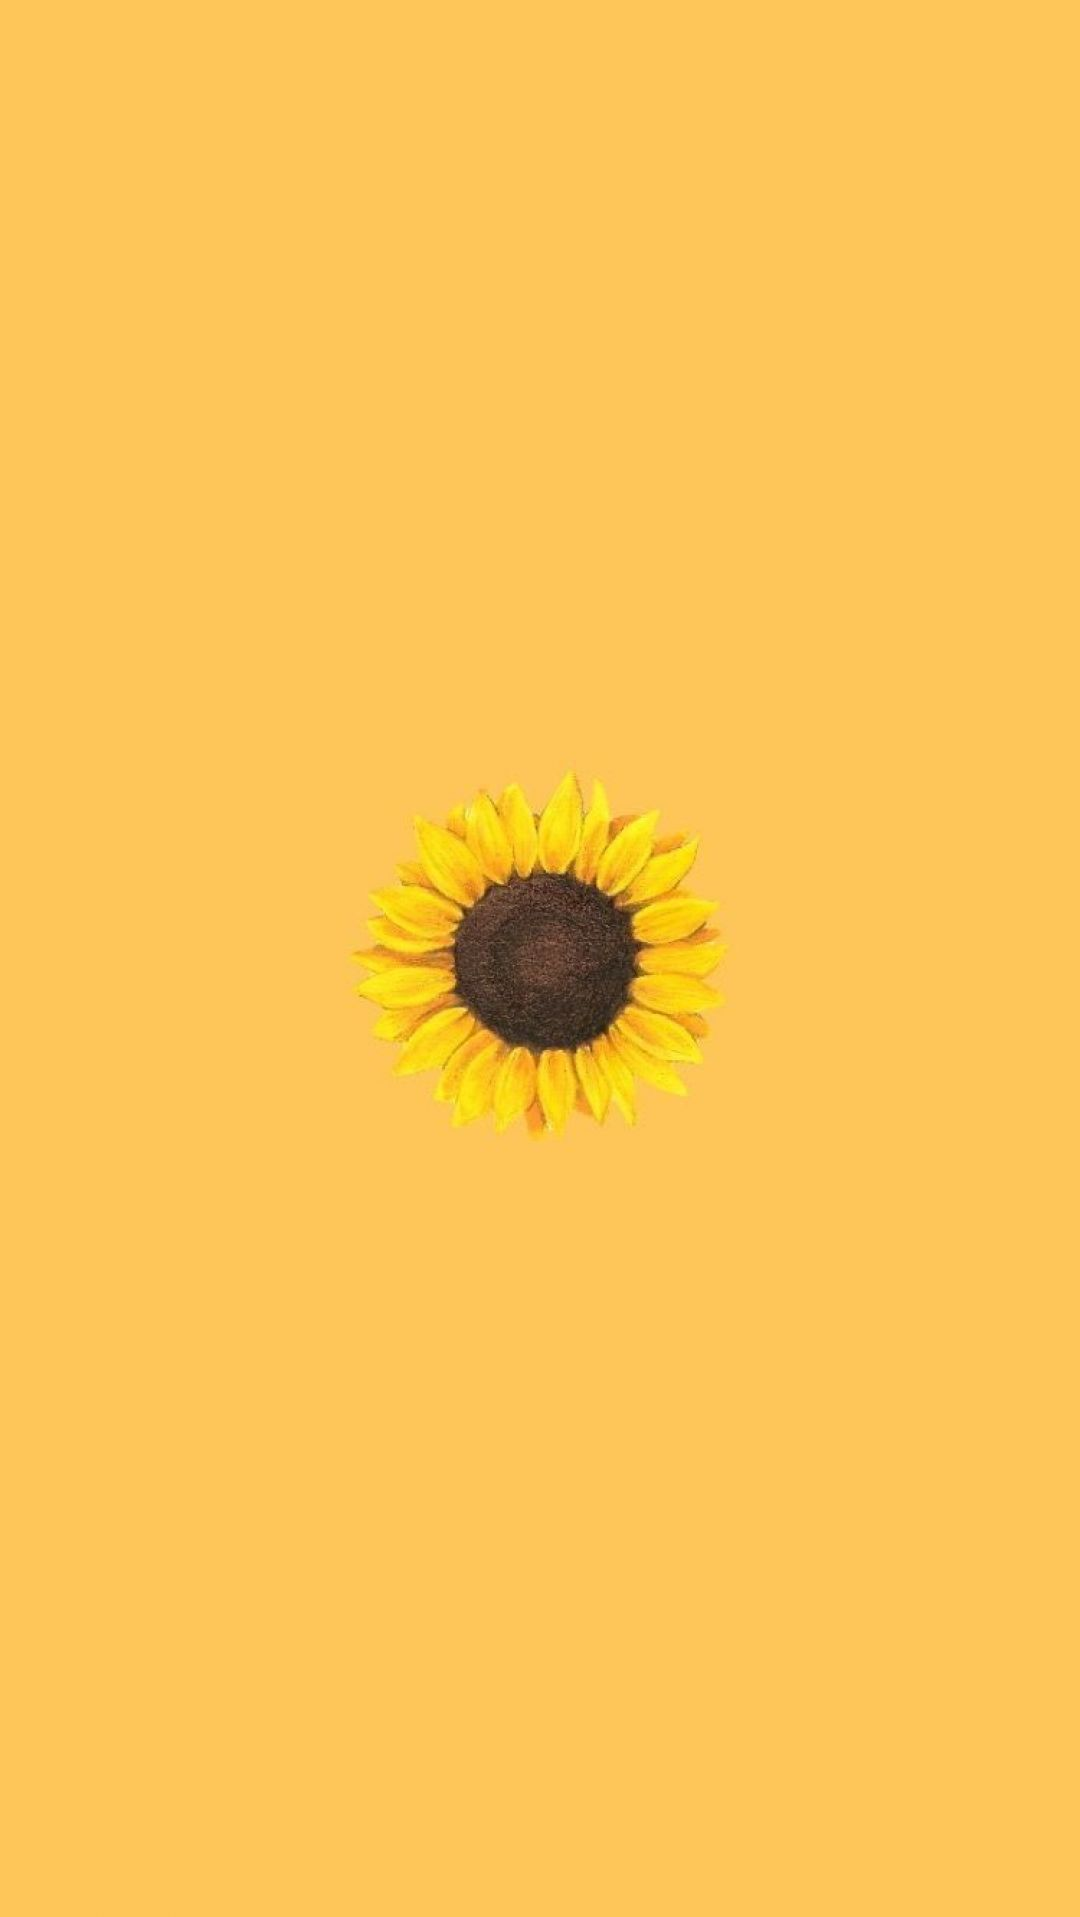 Yellow Aesthetic Sunflowers HD Wallpapers (Desktop Background / Android / iPhone) (1080p, 4k) (39240) - 3D / Abstract